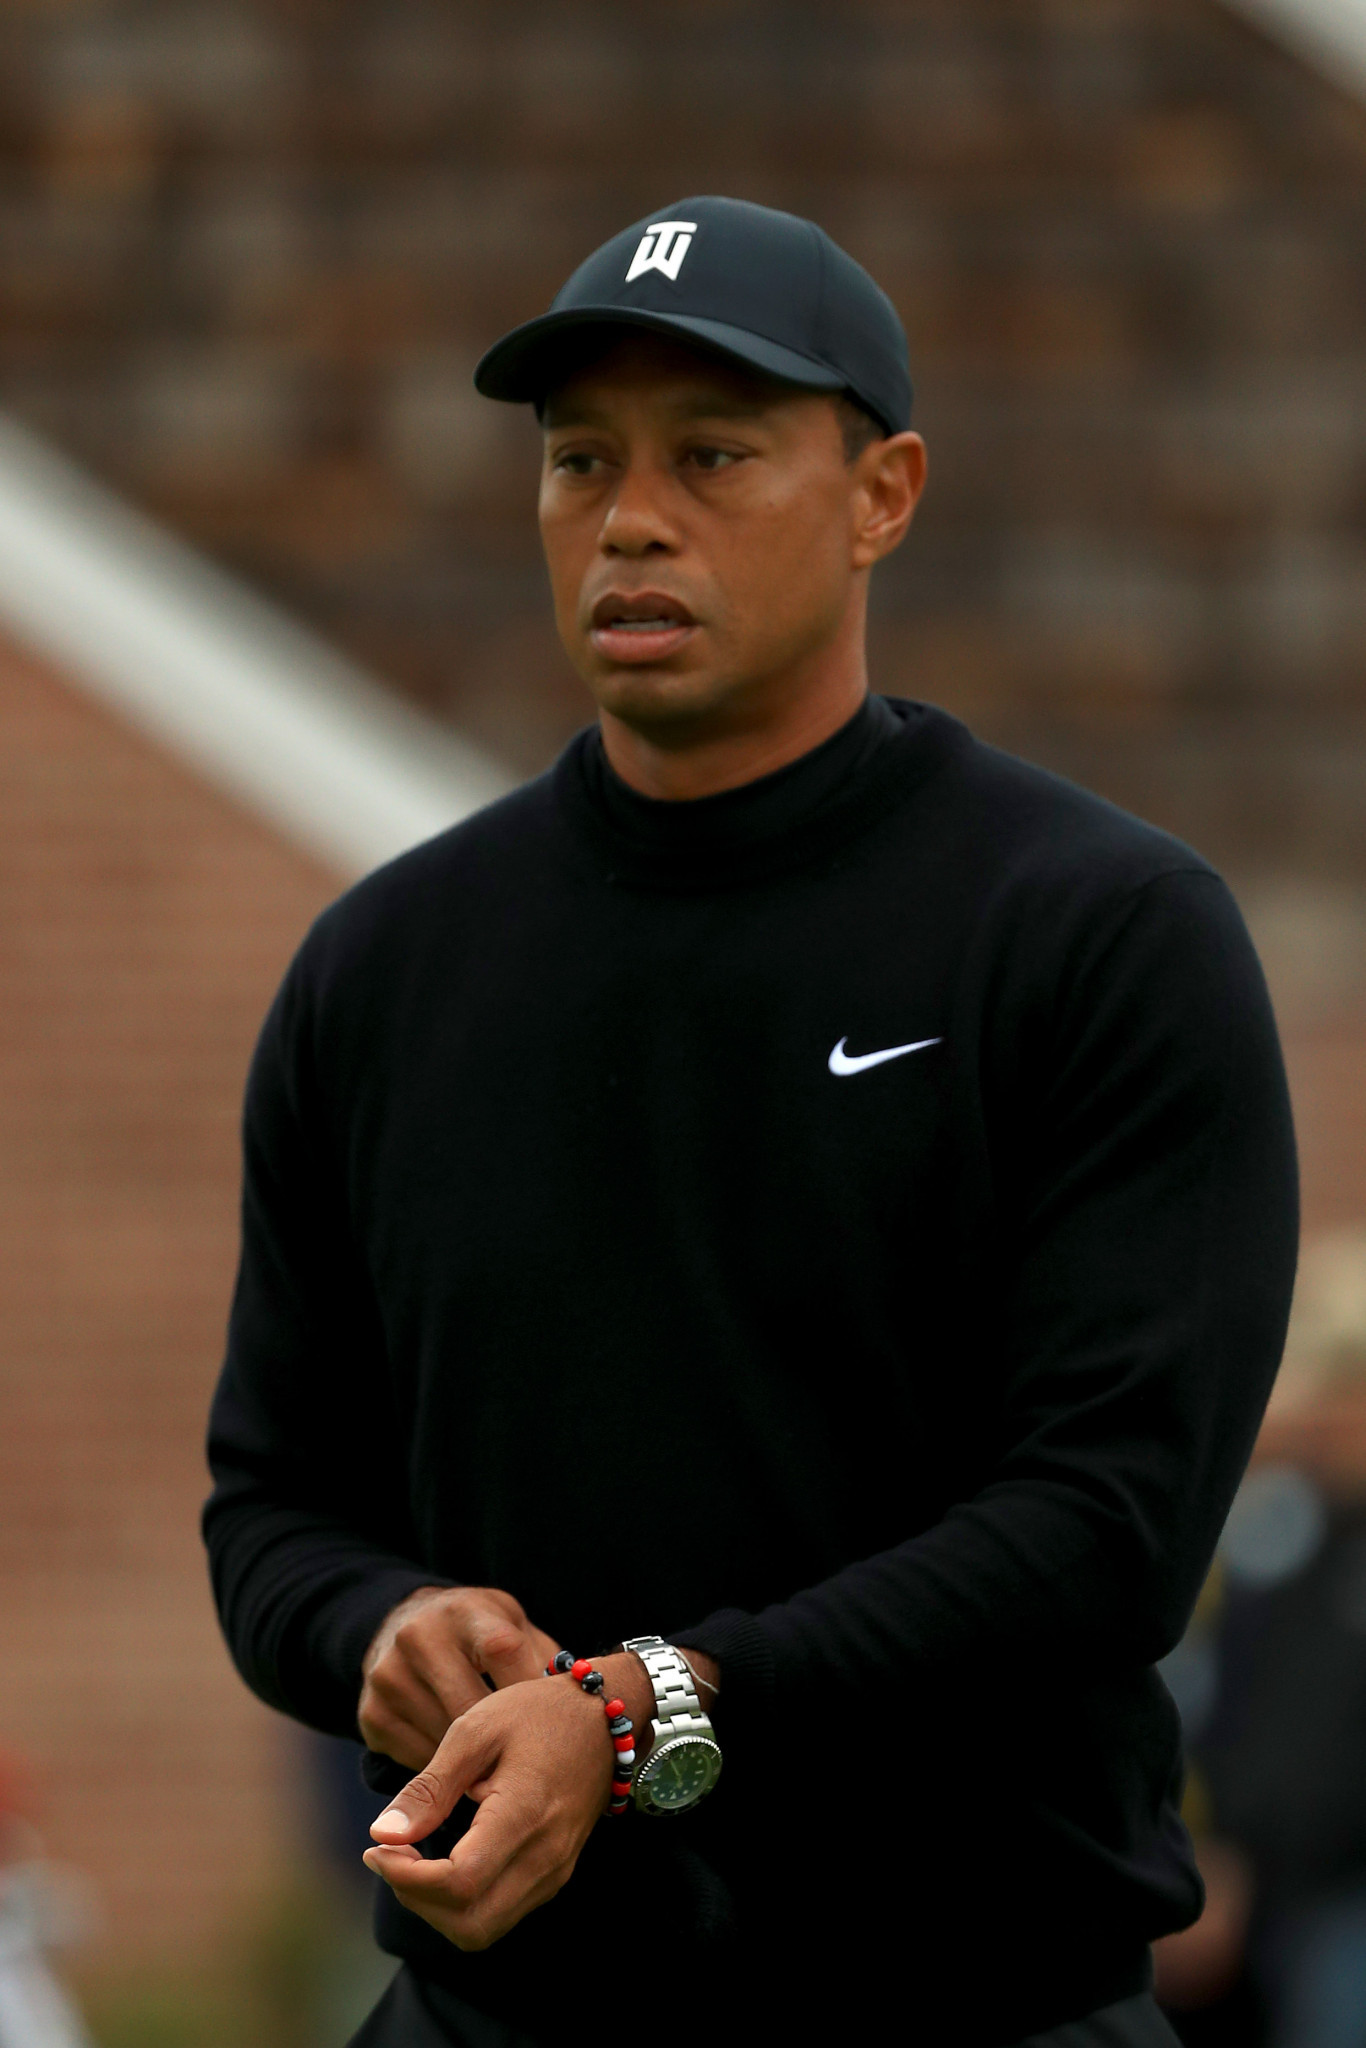 Tiger Woods said he would definitely like to play at Tokyo 2020 ©Getty Images